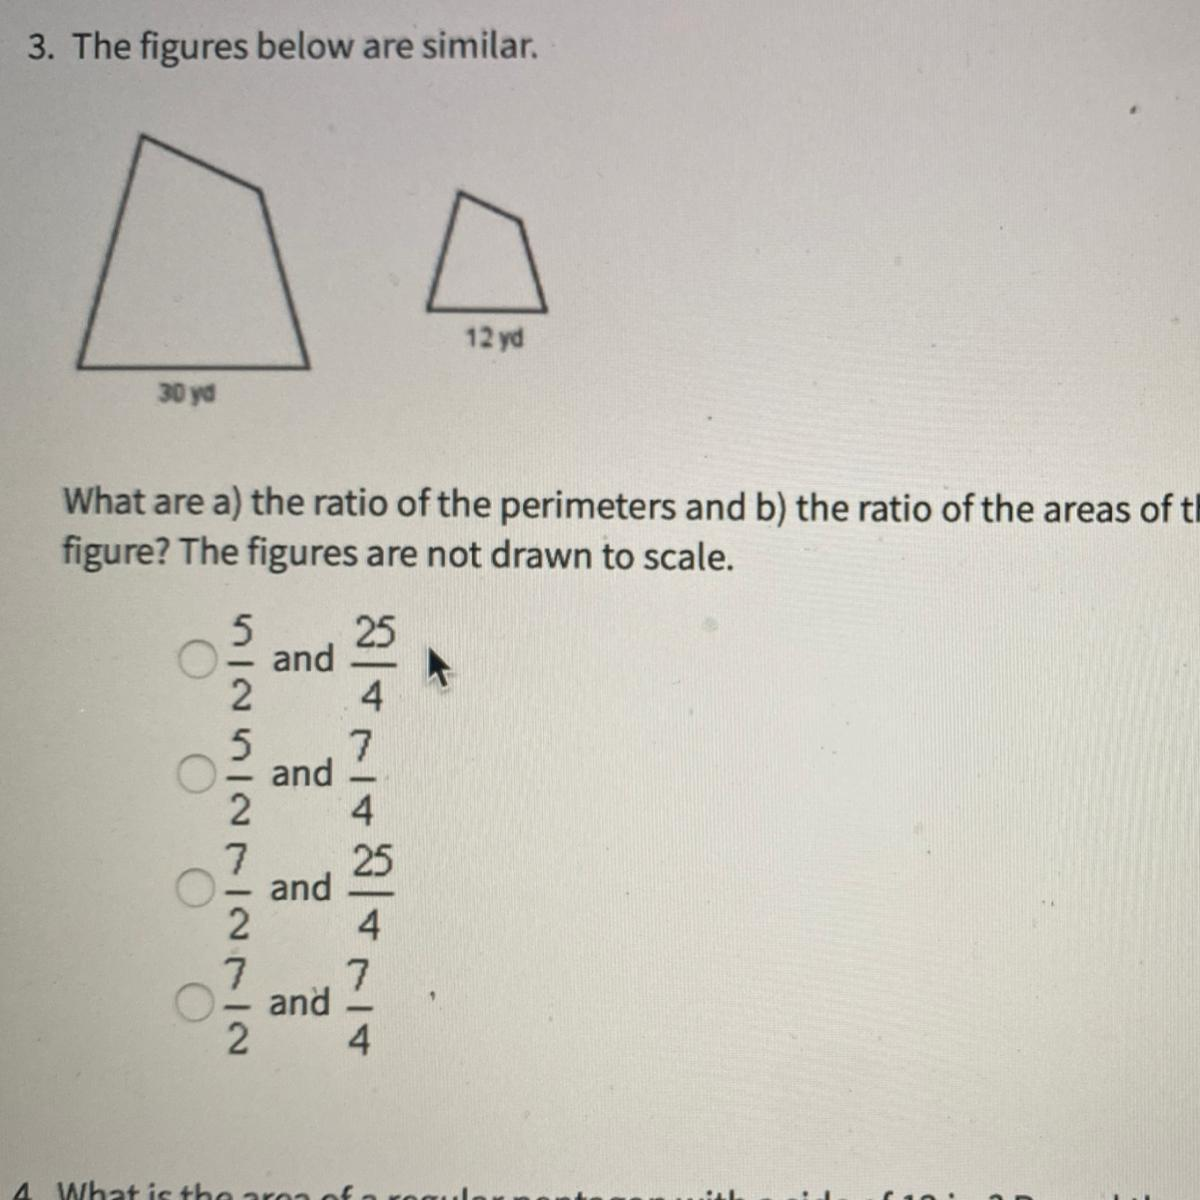 The figures below are similar. What are a) the ratio of ...